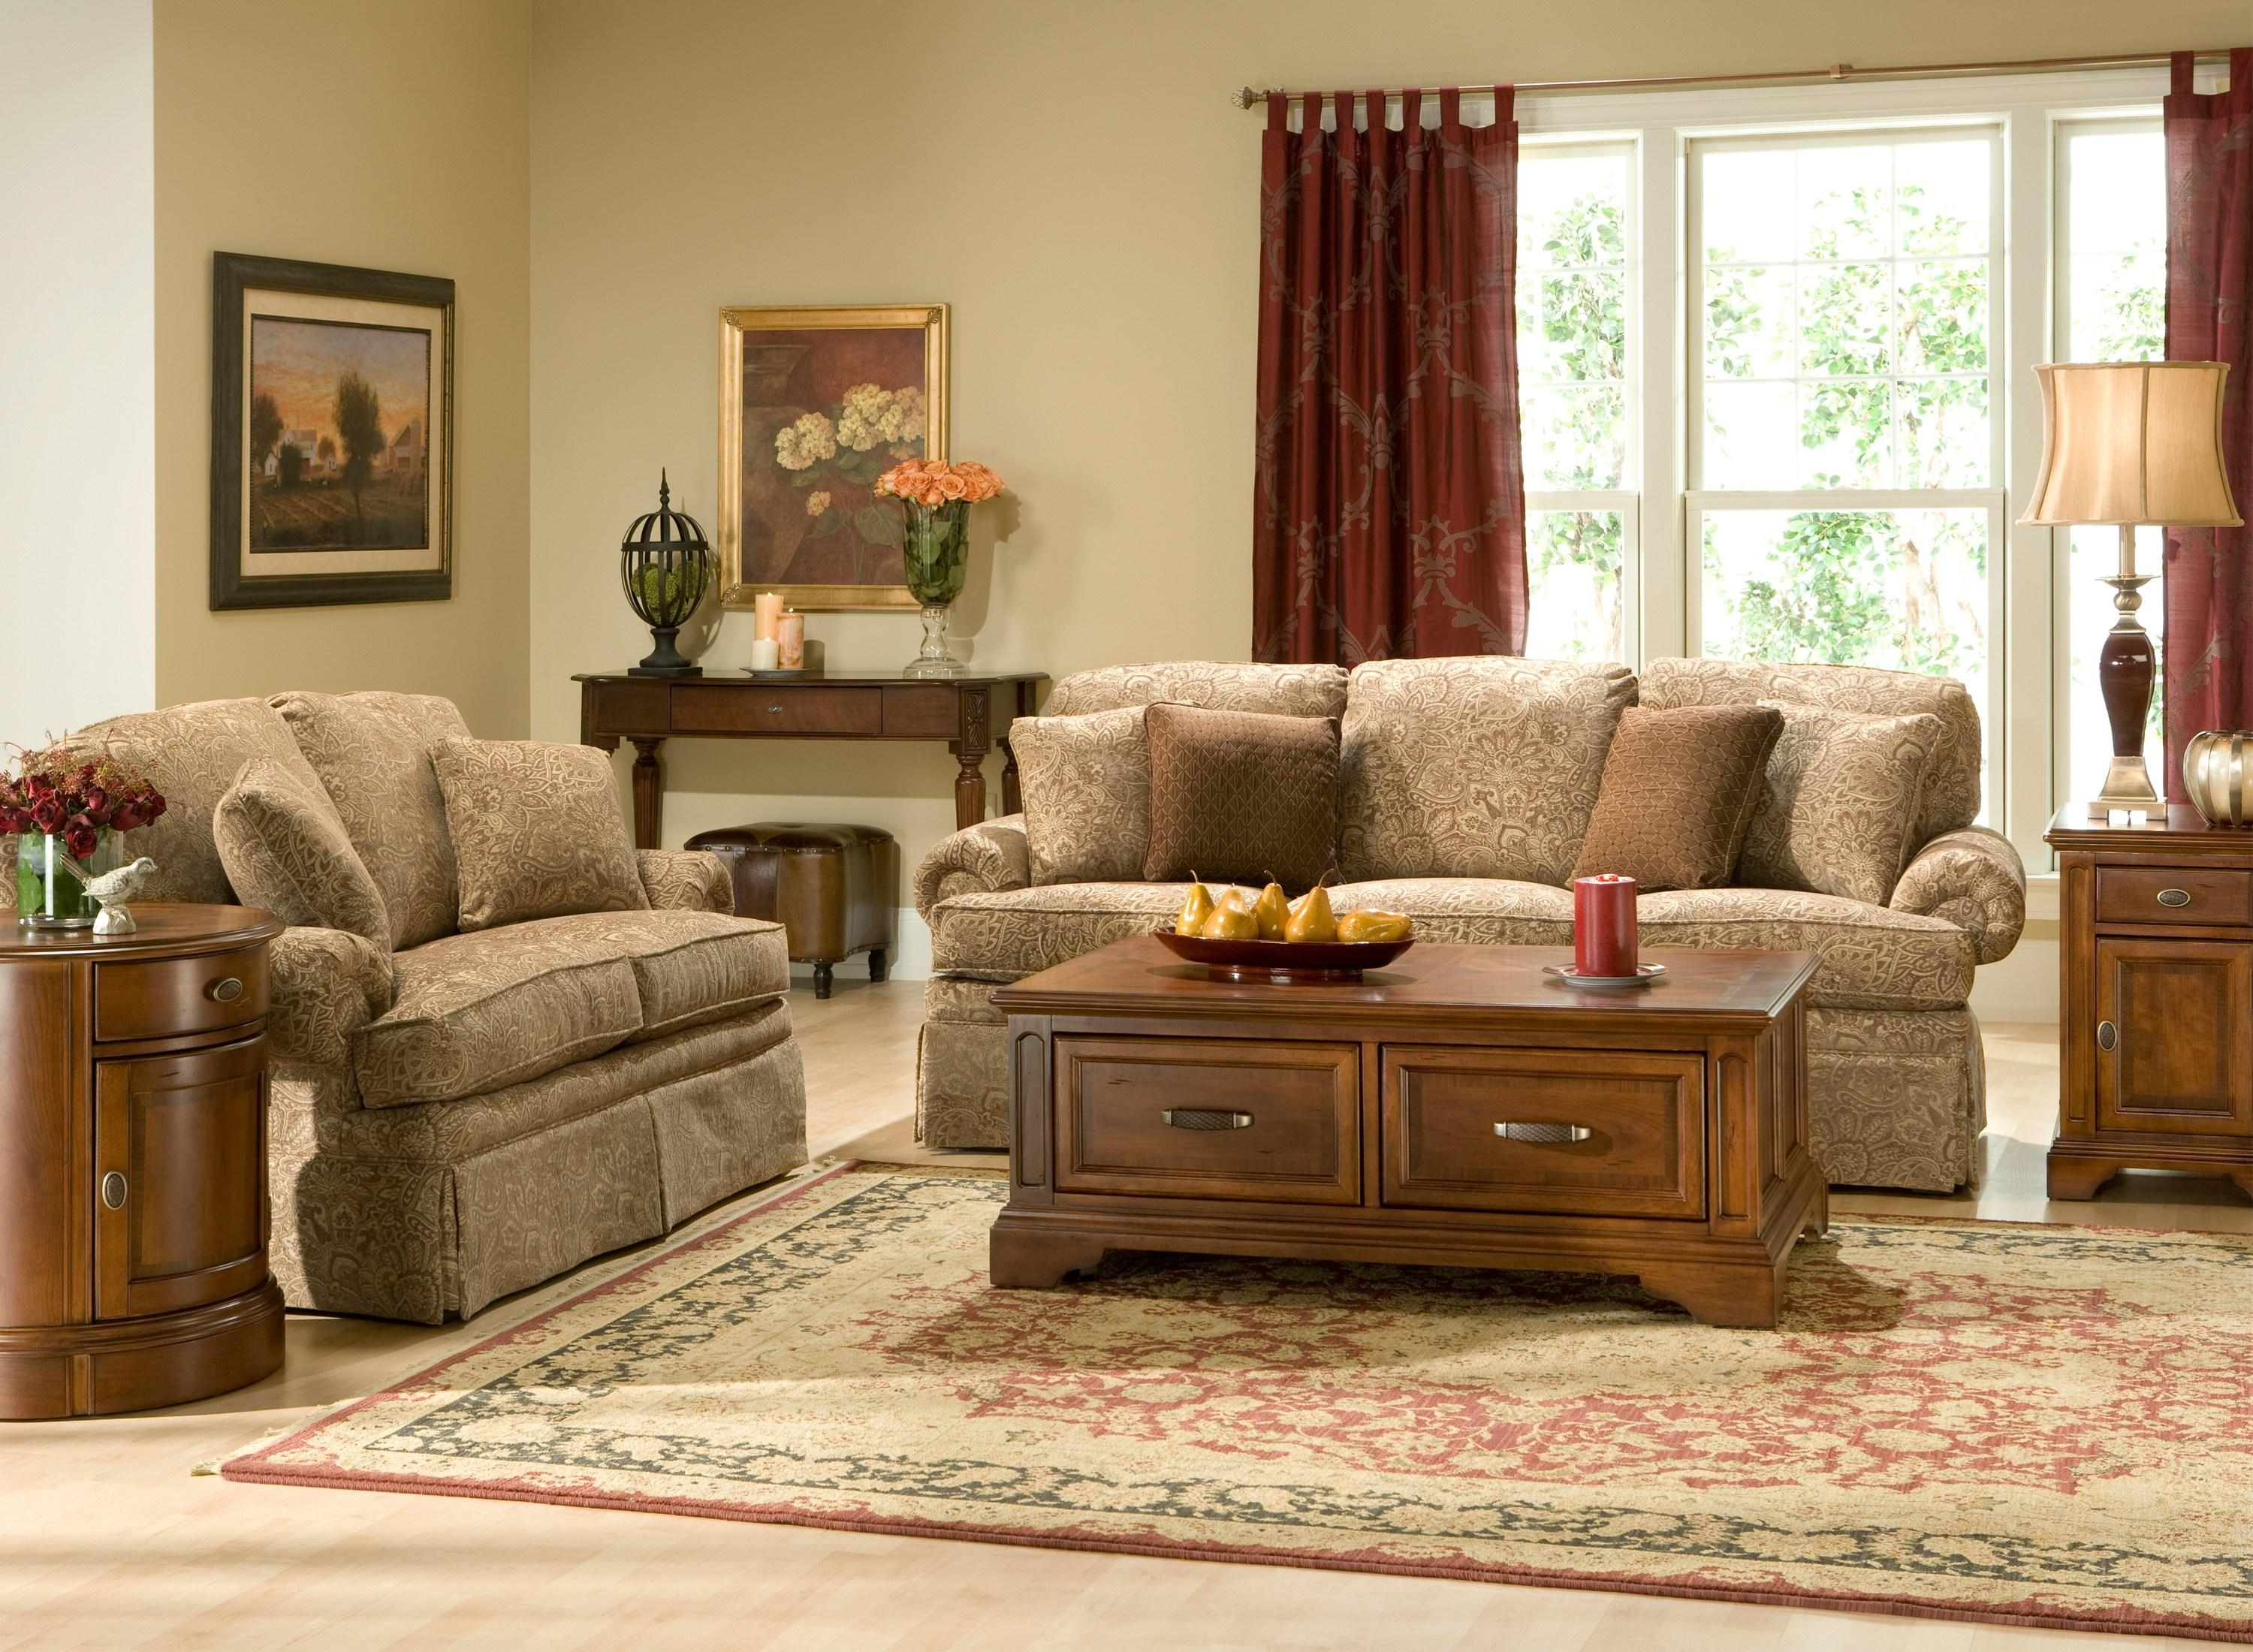 Raymour And Flanigans Lauren Sofa Setclayton Marcus | Great Throughout Clayton Marcus Sofas (View 20 of 20)